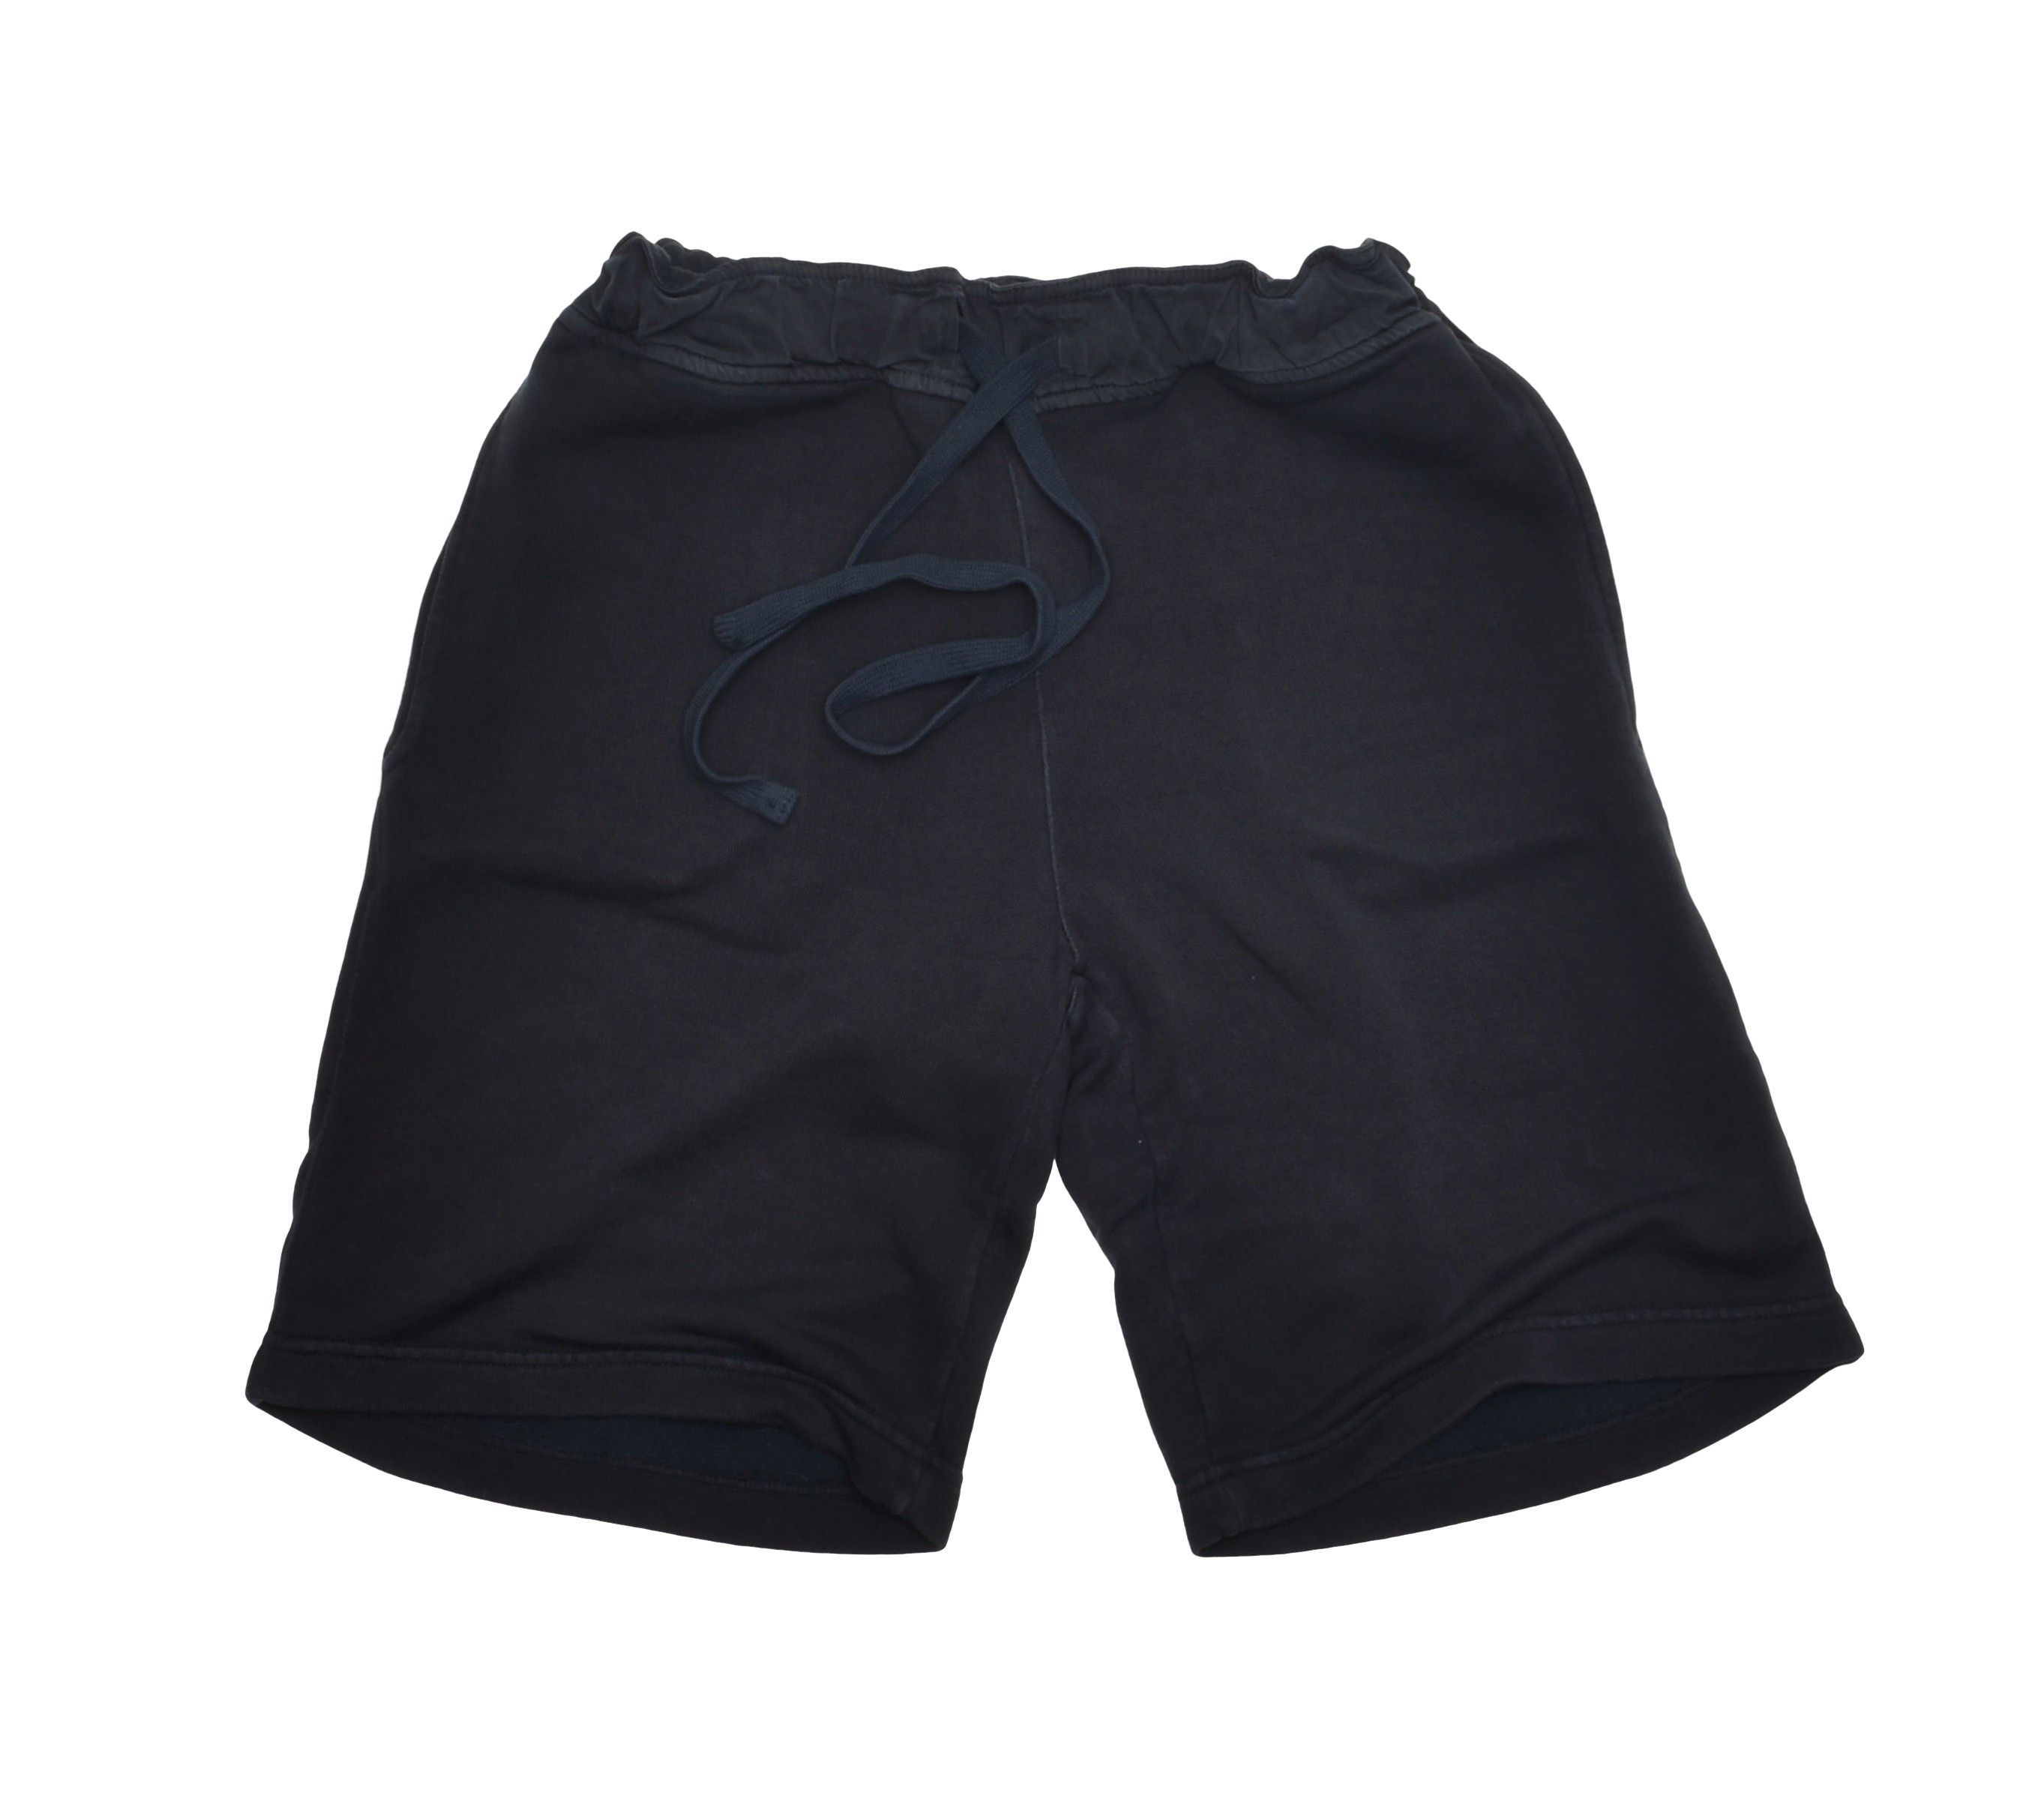 CROSSLEY - Herren Hose - Darty Bermuda - Navy